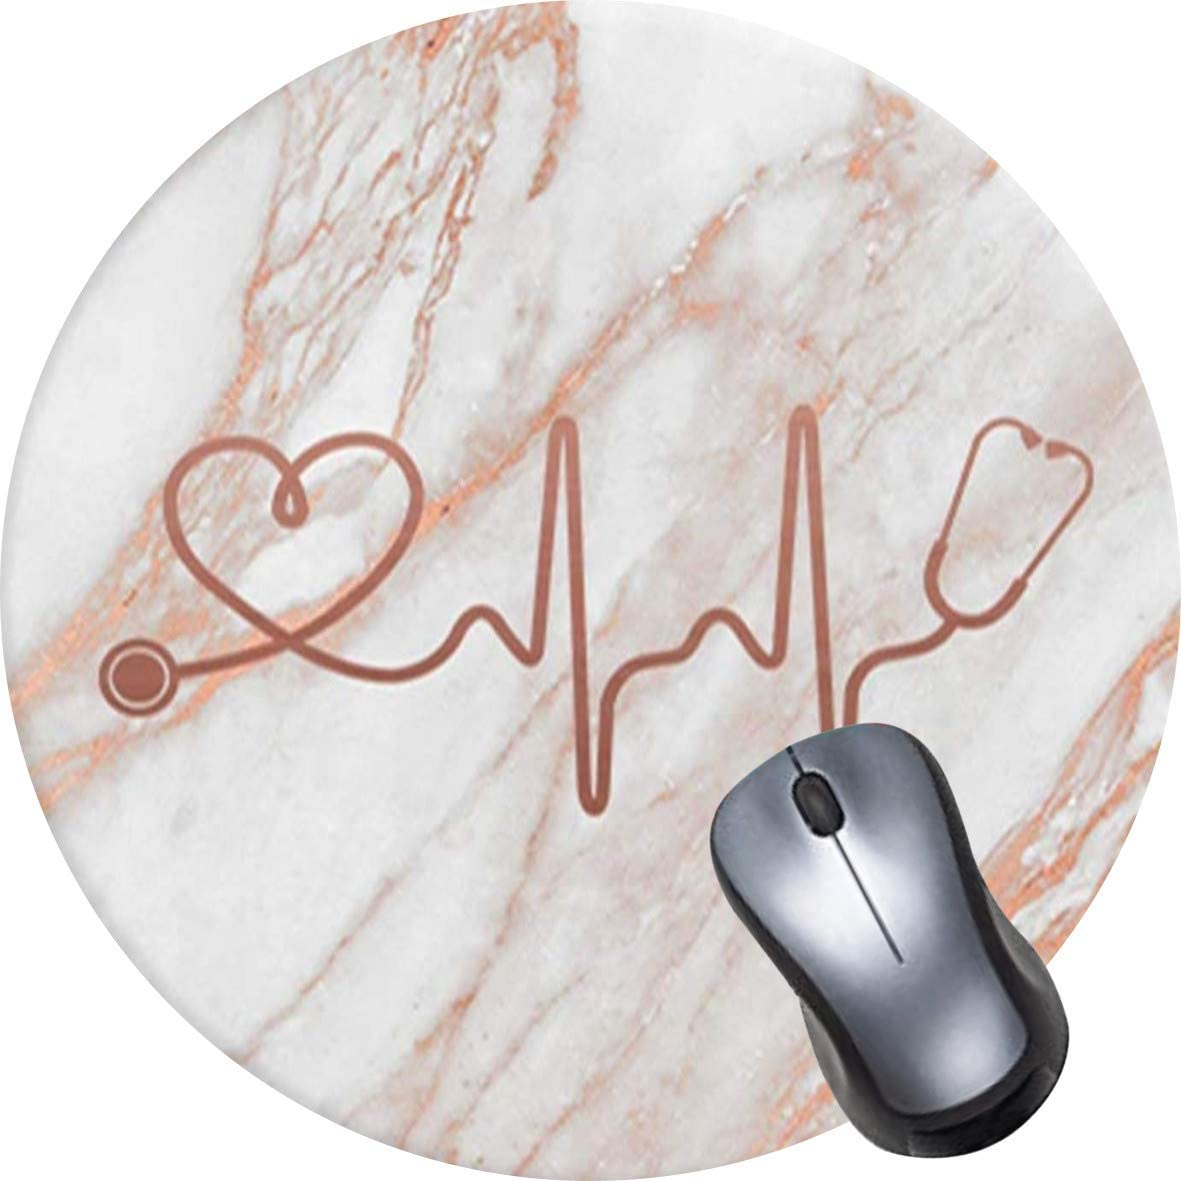 OTCEO Mouse Pad Non-Slip Rubber Base Mousepad,Waterproof Office Mouse Pad Small Size-Rose Gold Marble Heart White Cute Mouse Pad with Design Round Mandala Mouse Mat